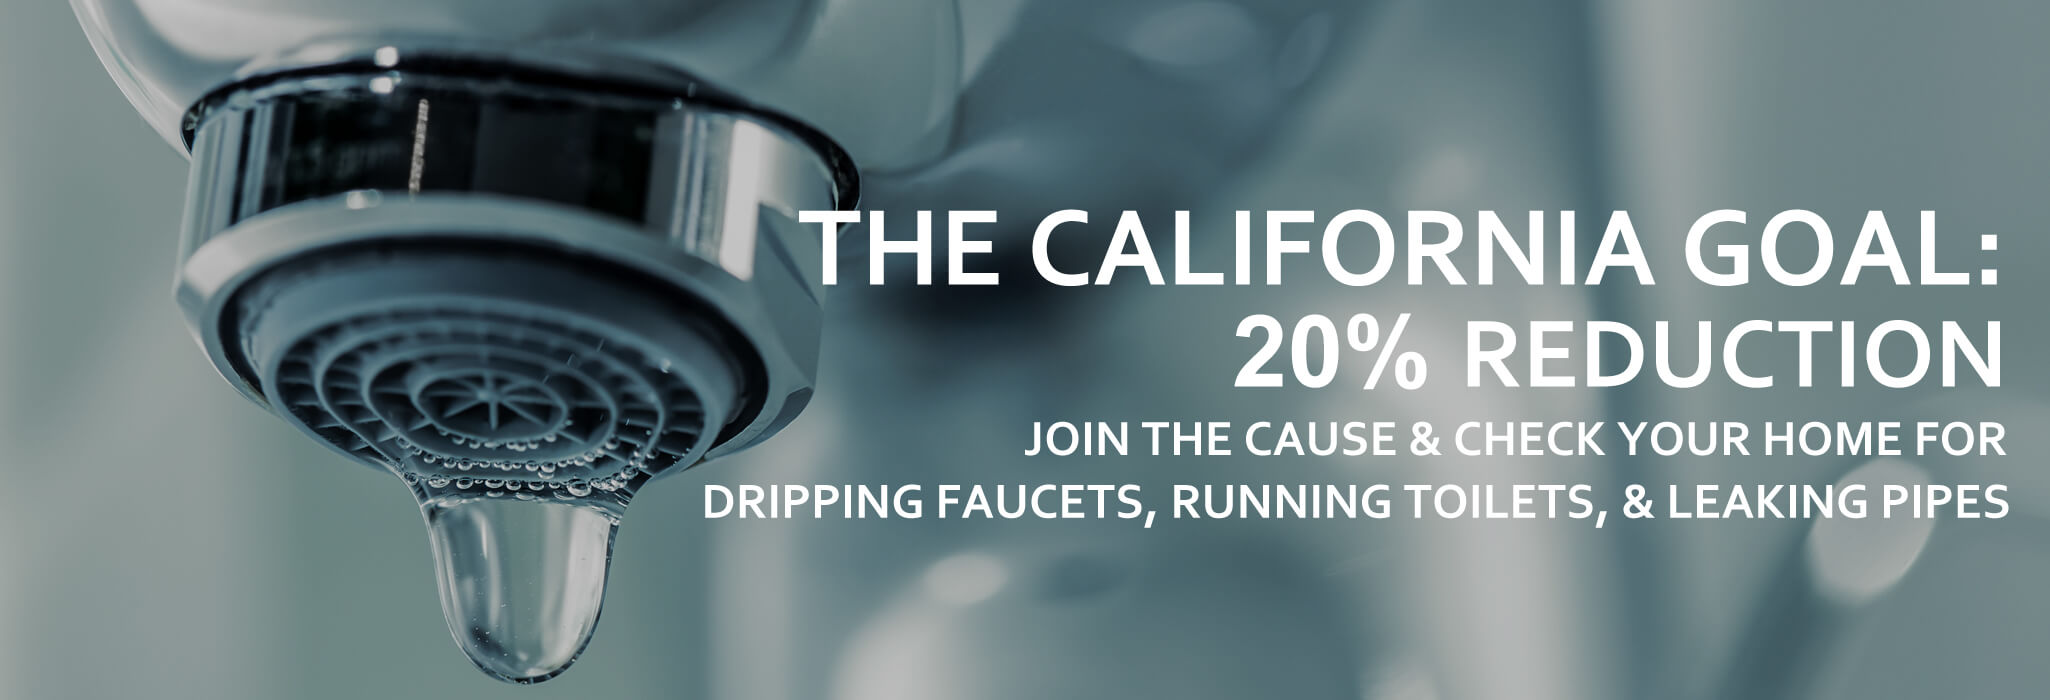 California Goal. Livermore Plumbers Help Reduce Water Usage and Leaks.jpg